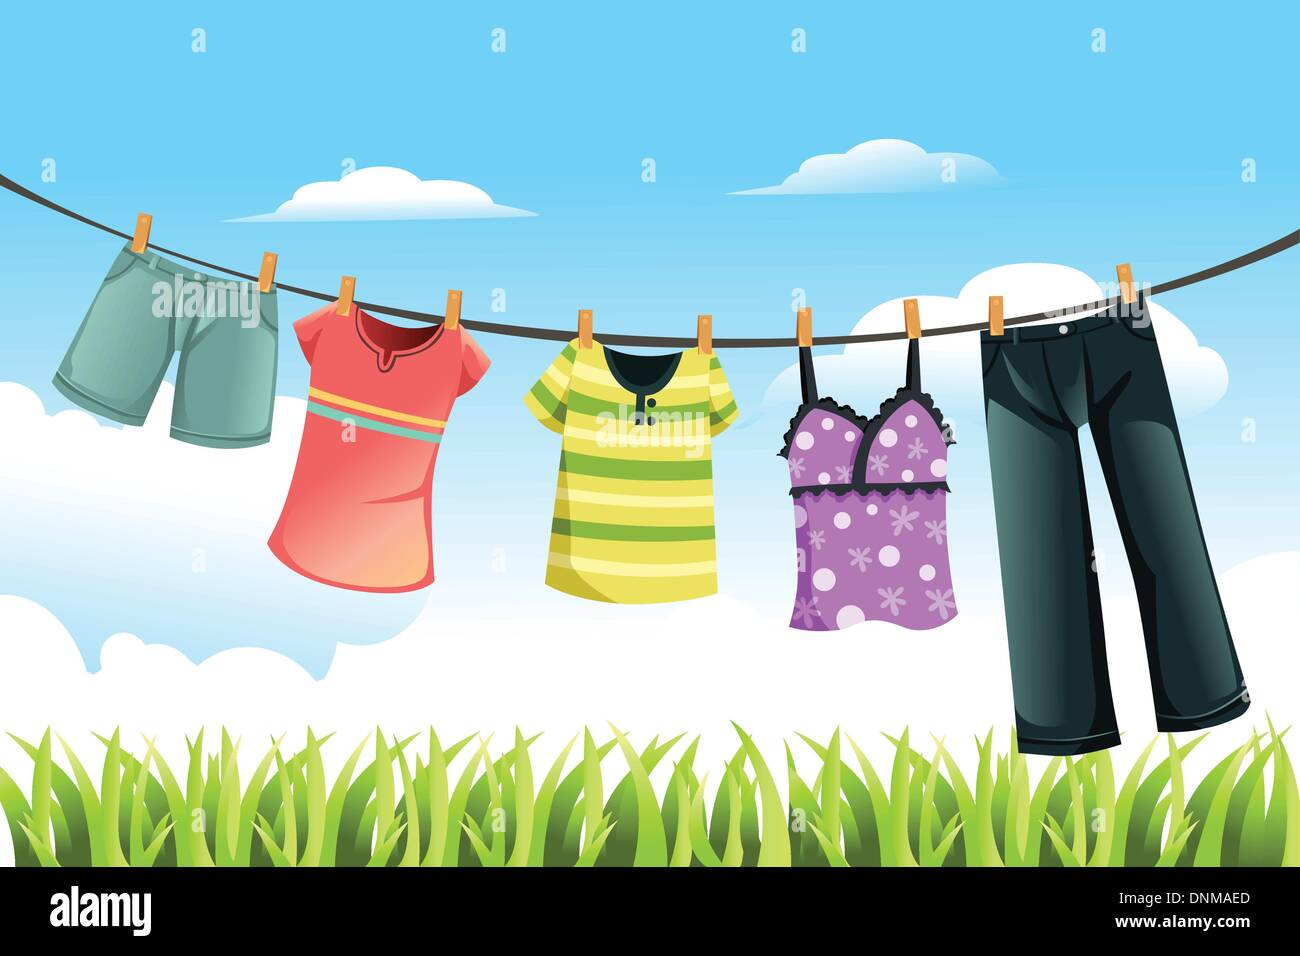 A vector illustration of clothes drying outdoor - Stock Vector